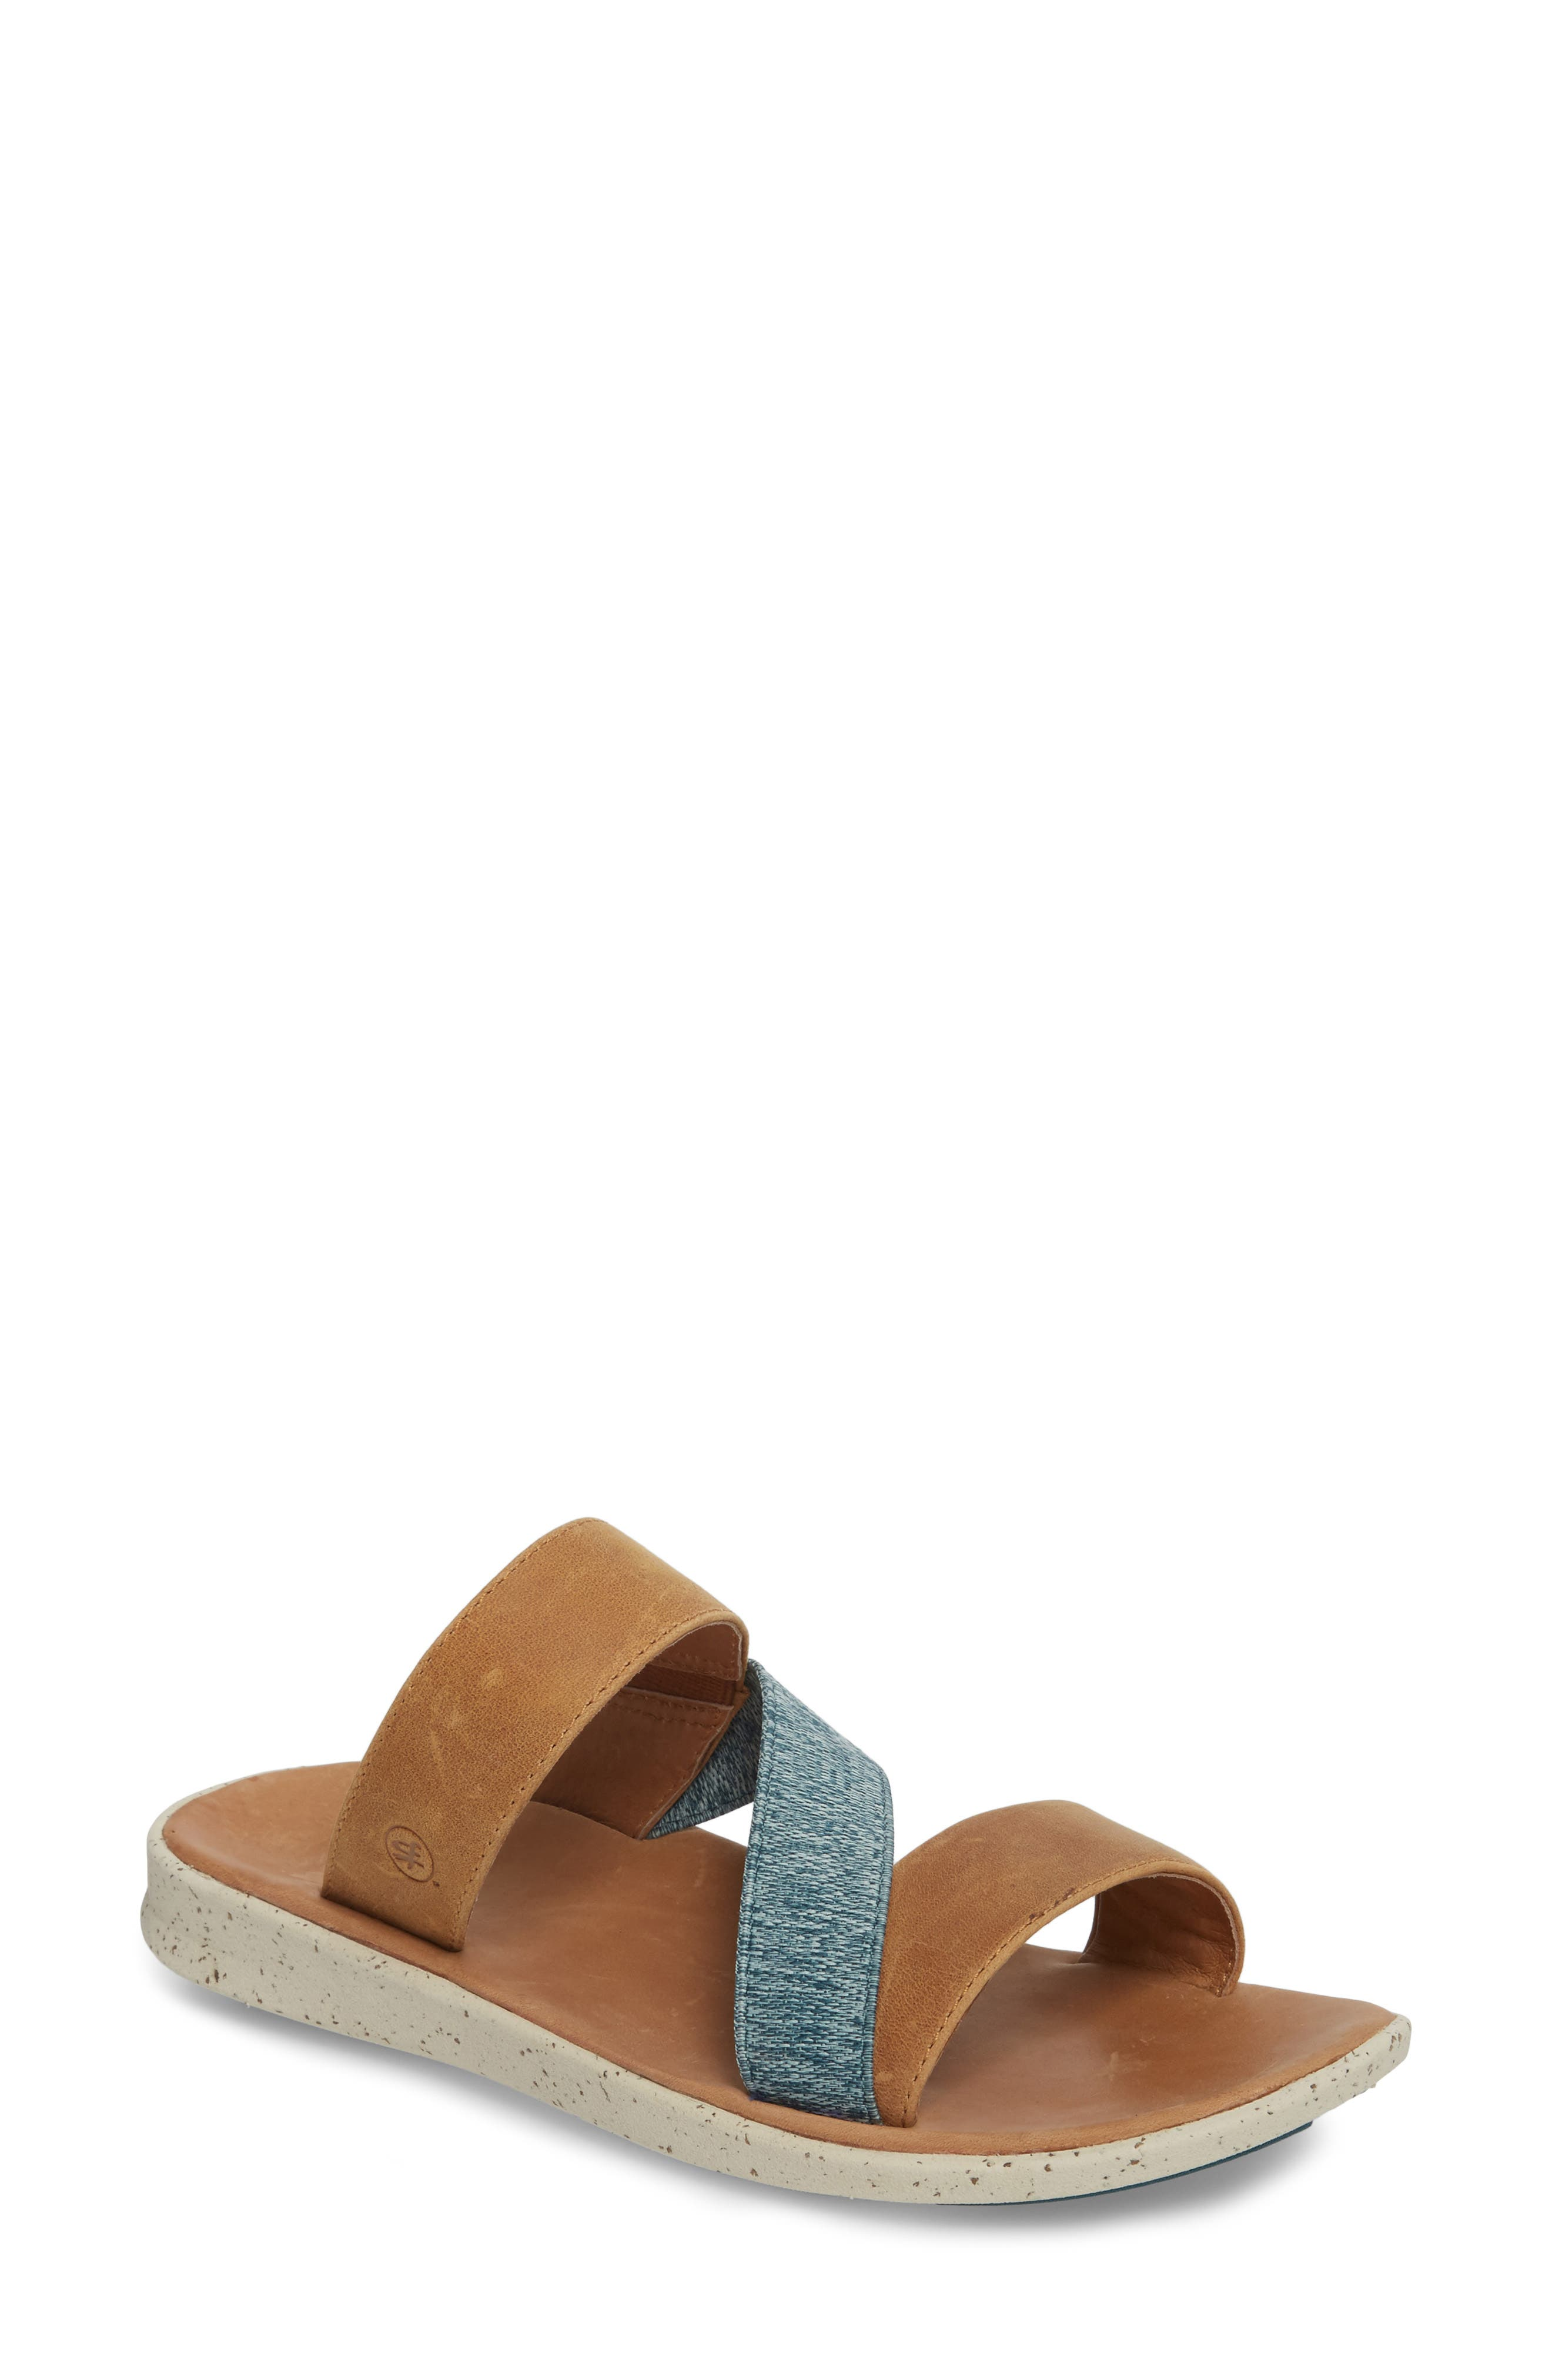 Reyes Slide Sandal,                             Main thumbnail 1, color,                             Brown Leather